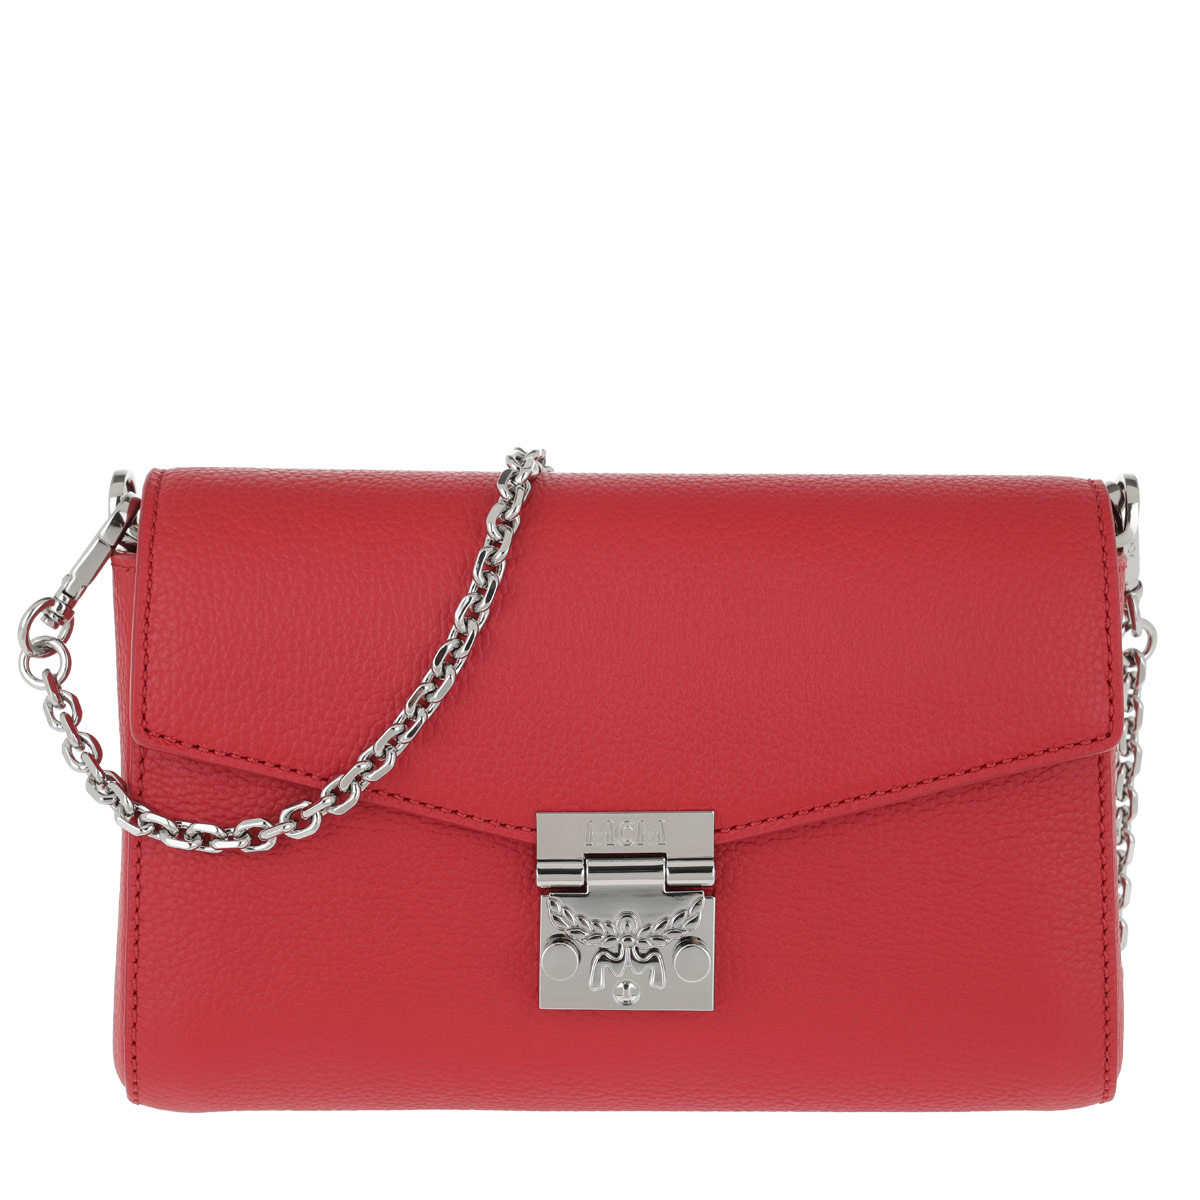 MCM Umhängetasche - Millie Park Avenue Crossbody Small Ruby Red - in rot - für Damen